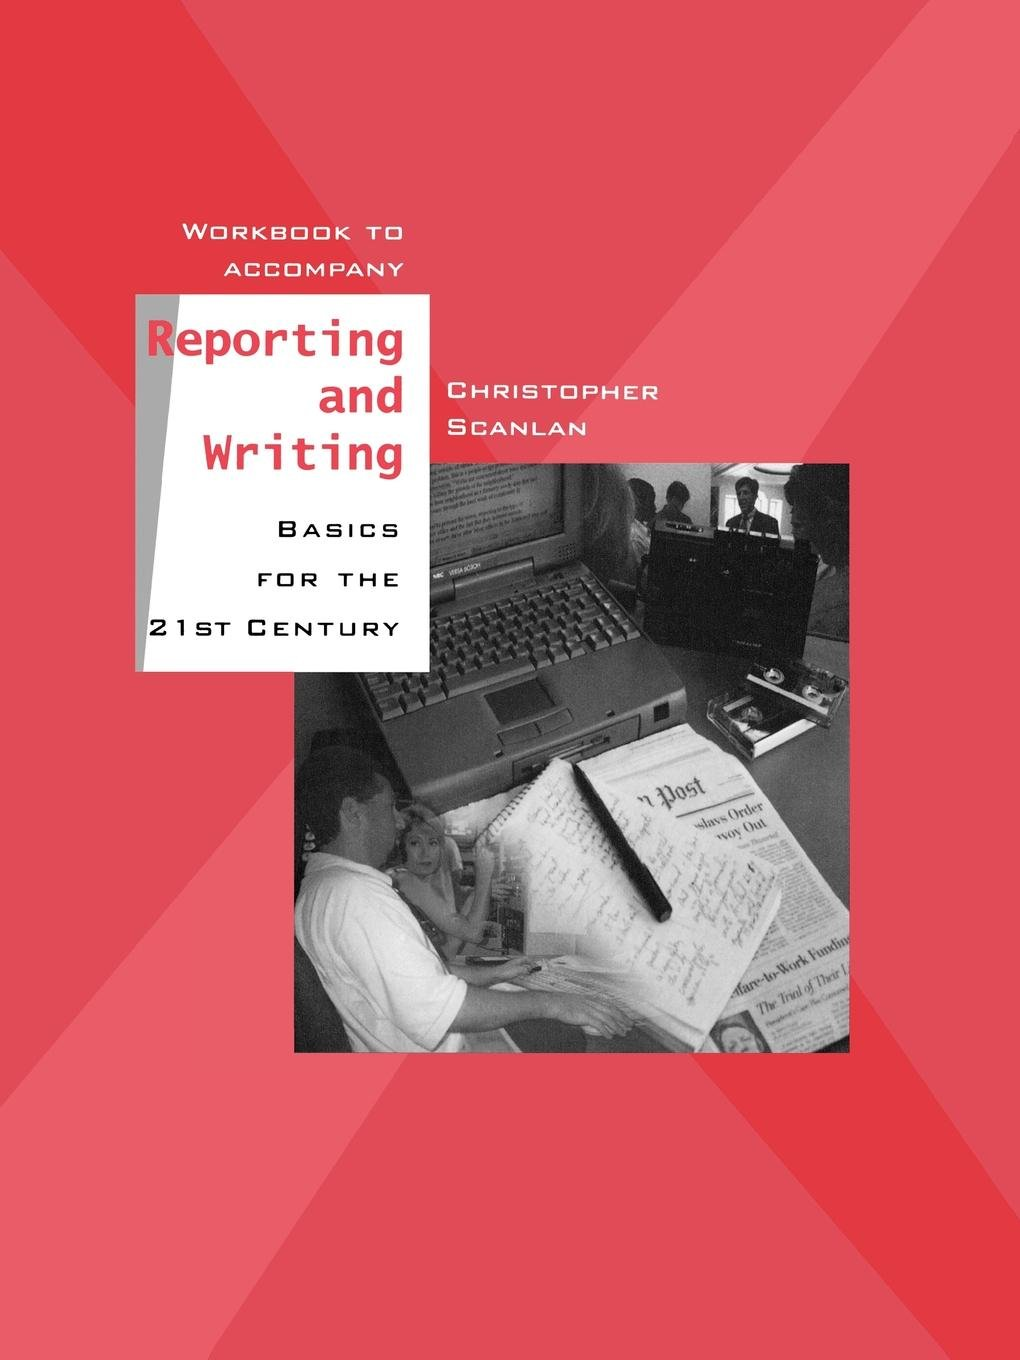 Buy Workbook to Accompany Reporting and Writing Basics for the 21st Century  Book Online at Low Prices in India | Workbook to Accompany Reporting and  Writing ...